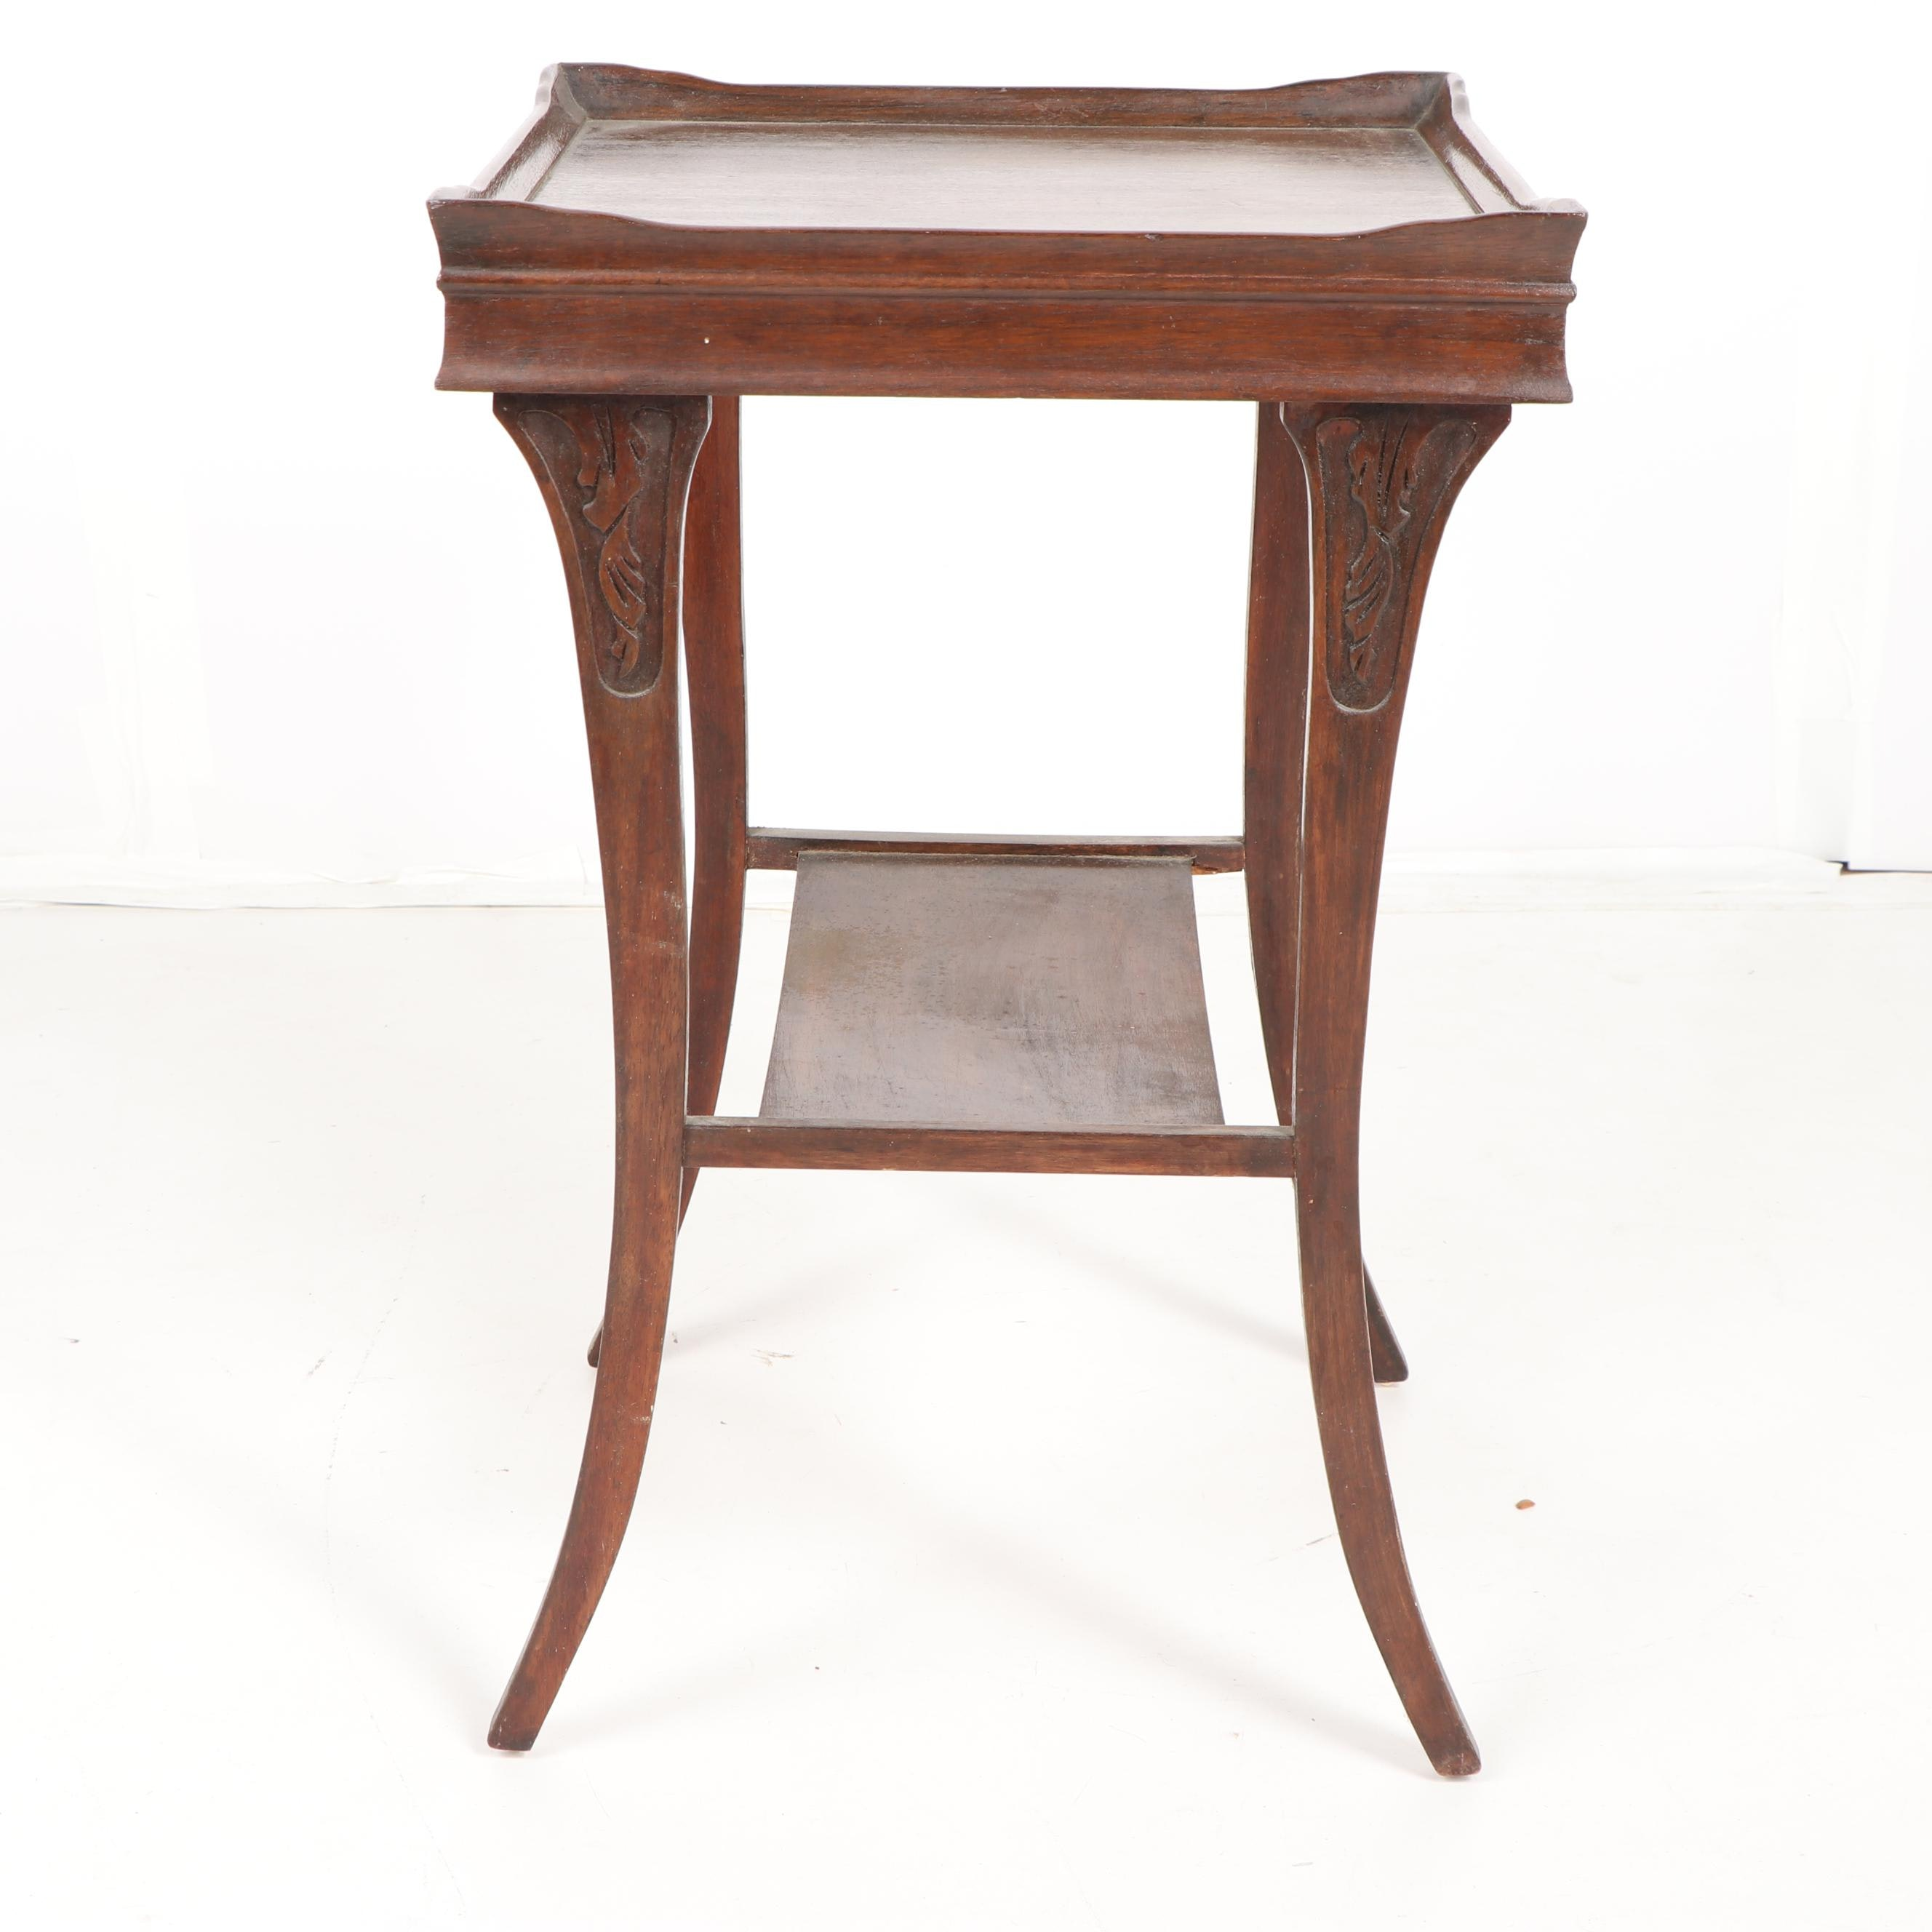 Late Victorian Style Mahogany Side Table, Early/Mid 20th Century